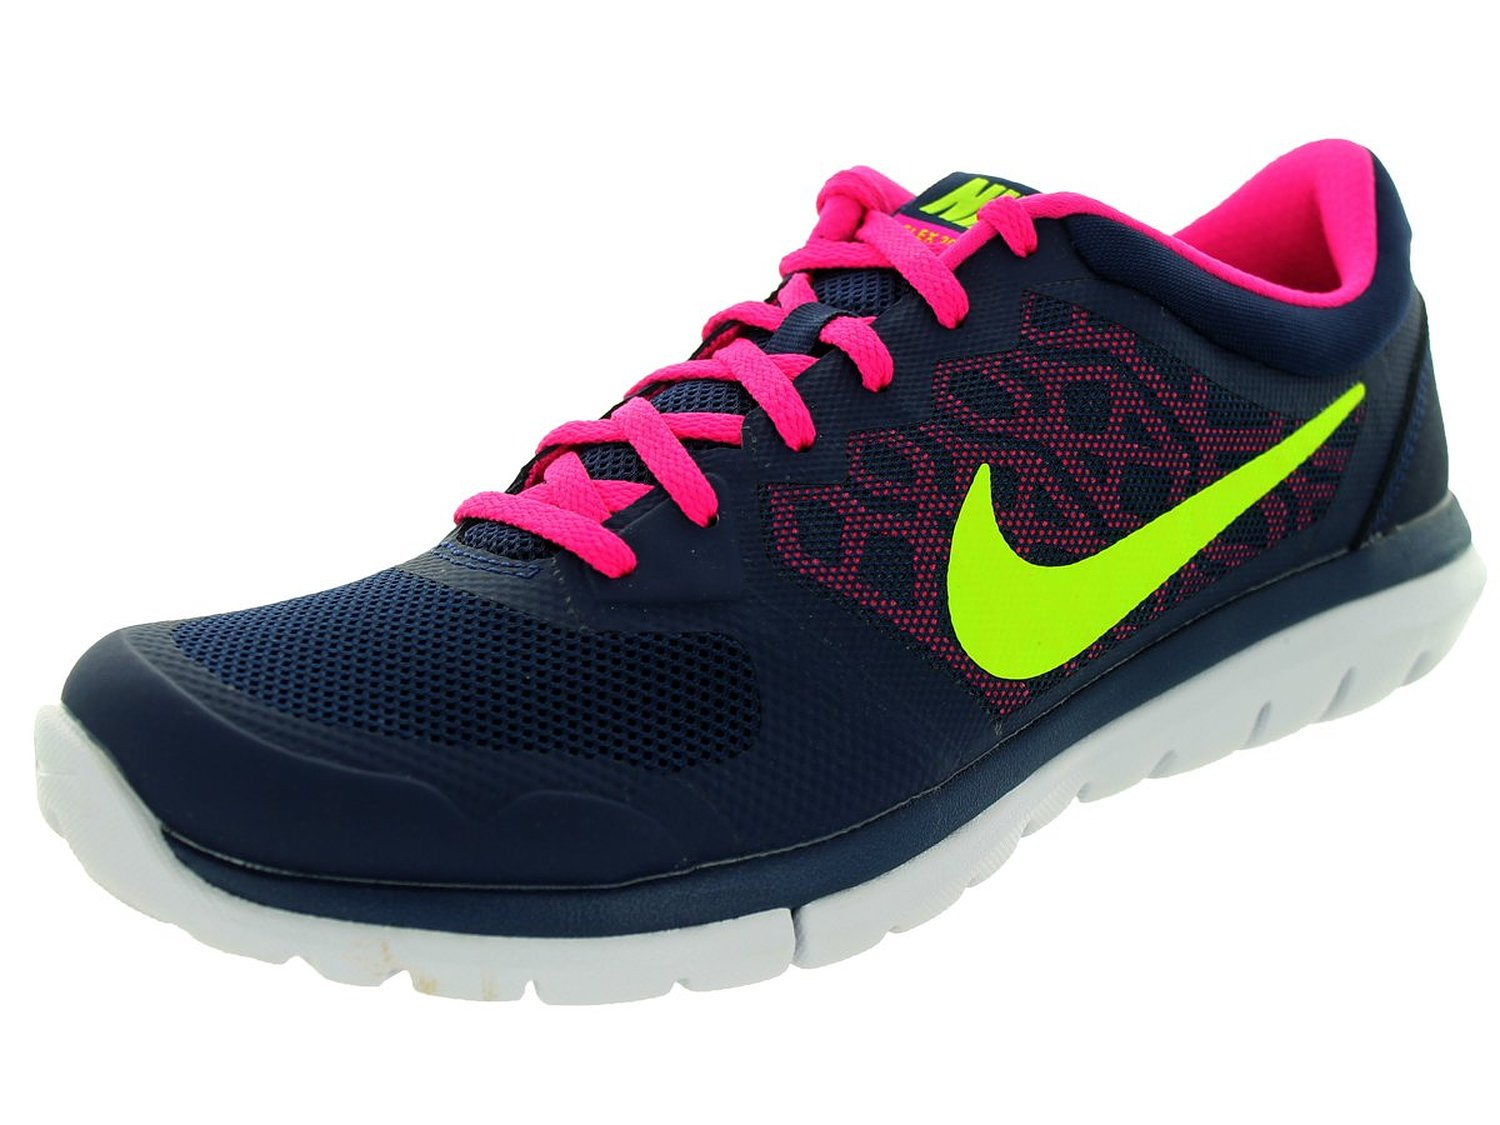 Nike Flex Run 2015 Round Toe Synthetic Running Shoe